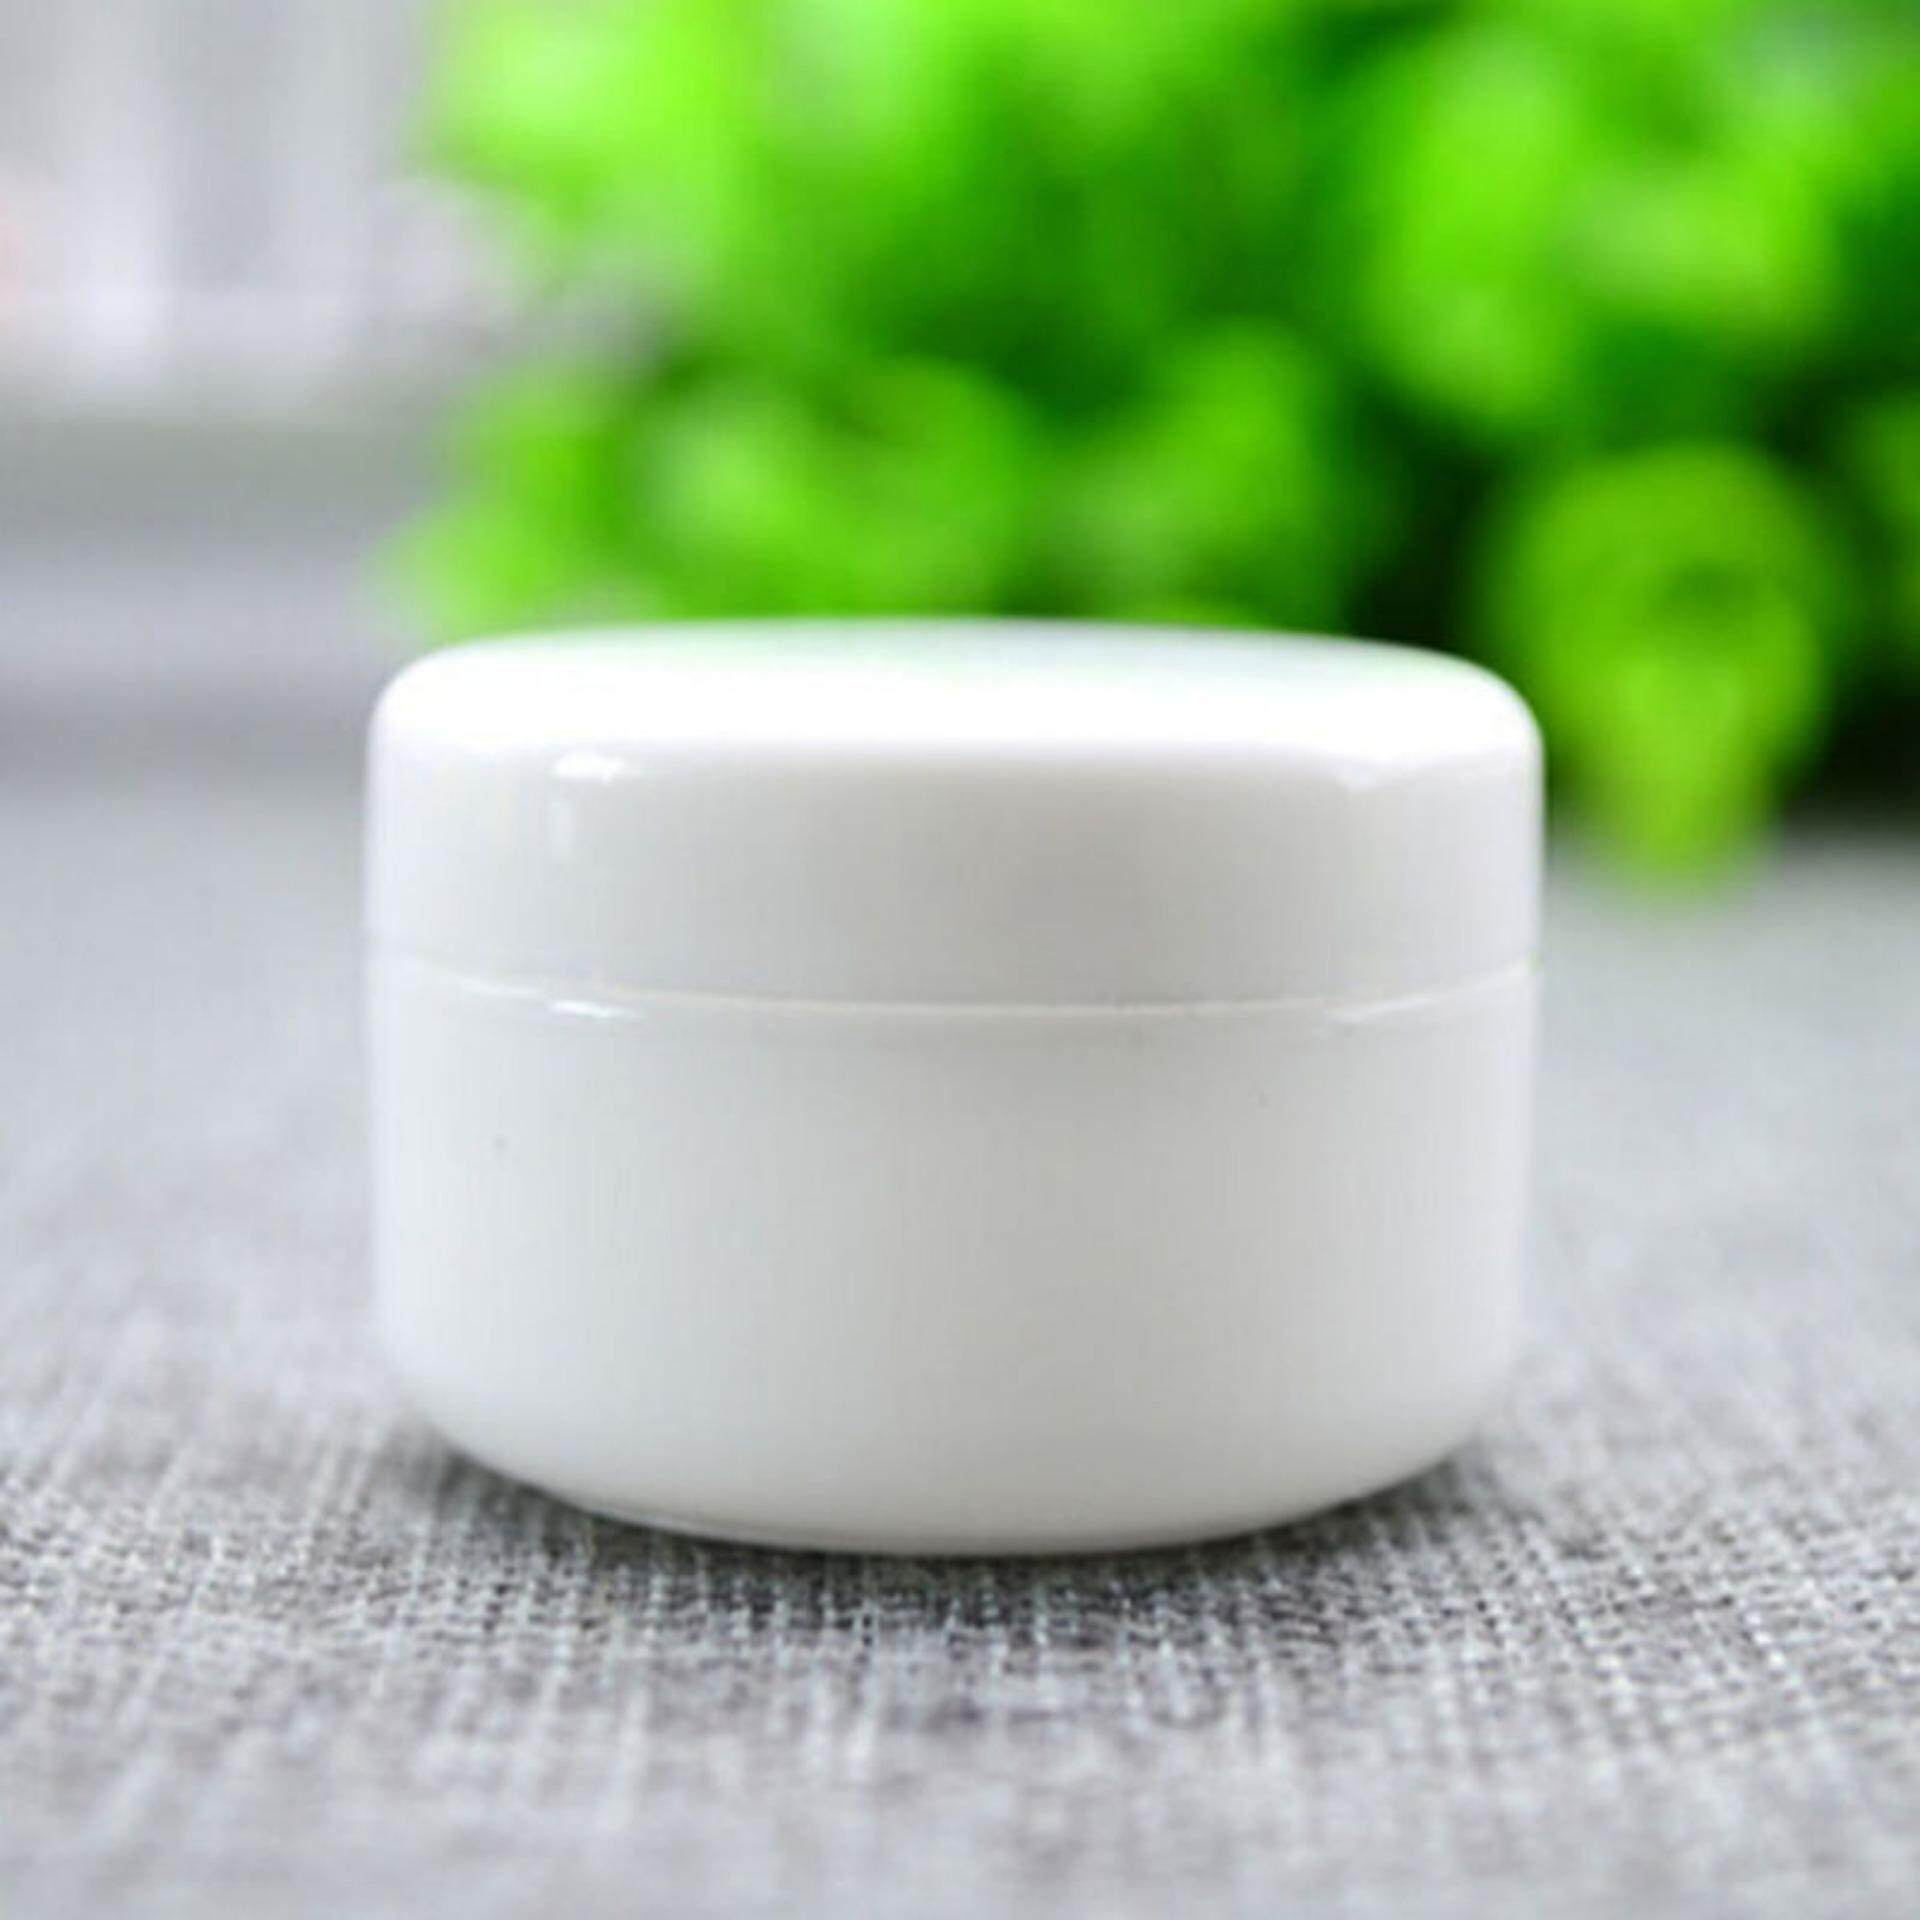 Travel Size Bottles Containers Buy Cream Pot Frosted Jar 10gr 5pcs Empty Makeup Face Lotion Cosmetic Container White 20ml